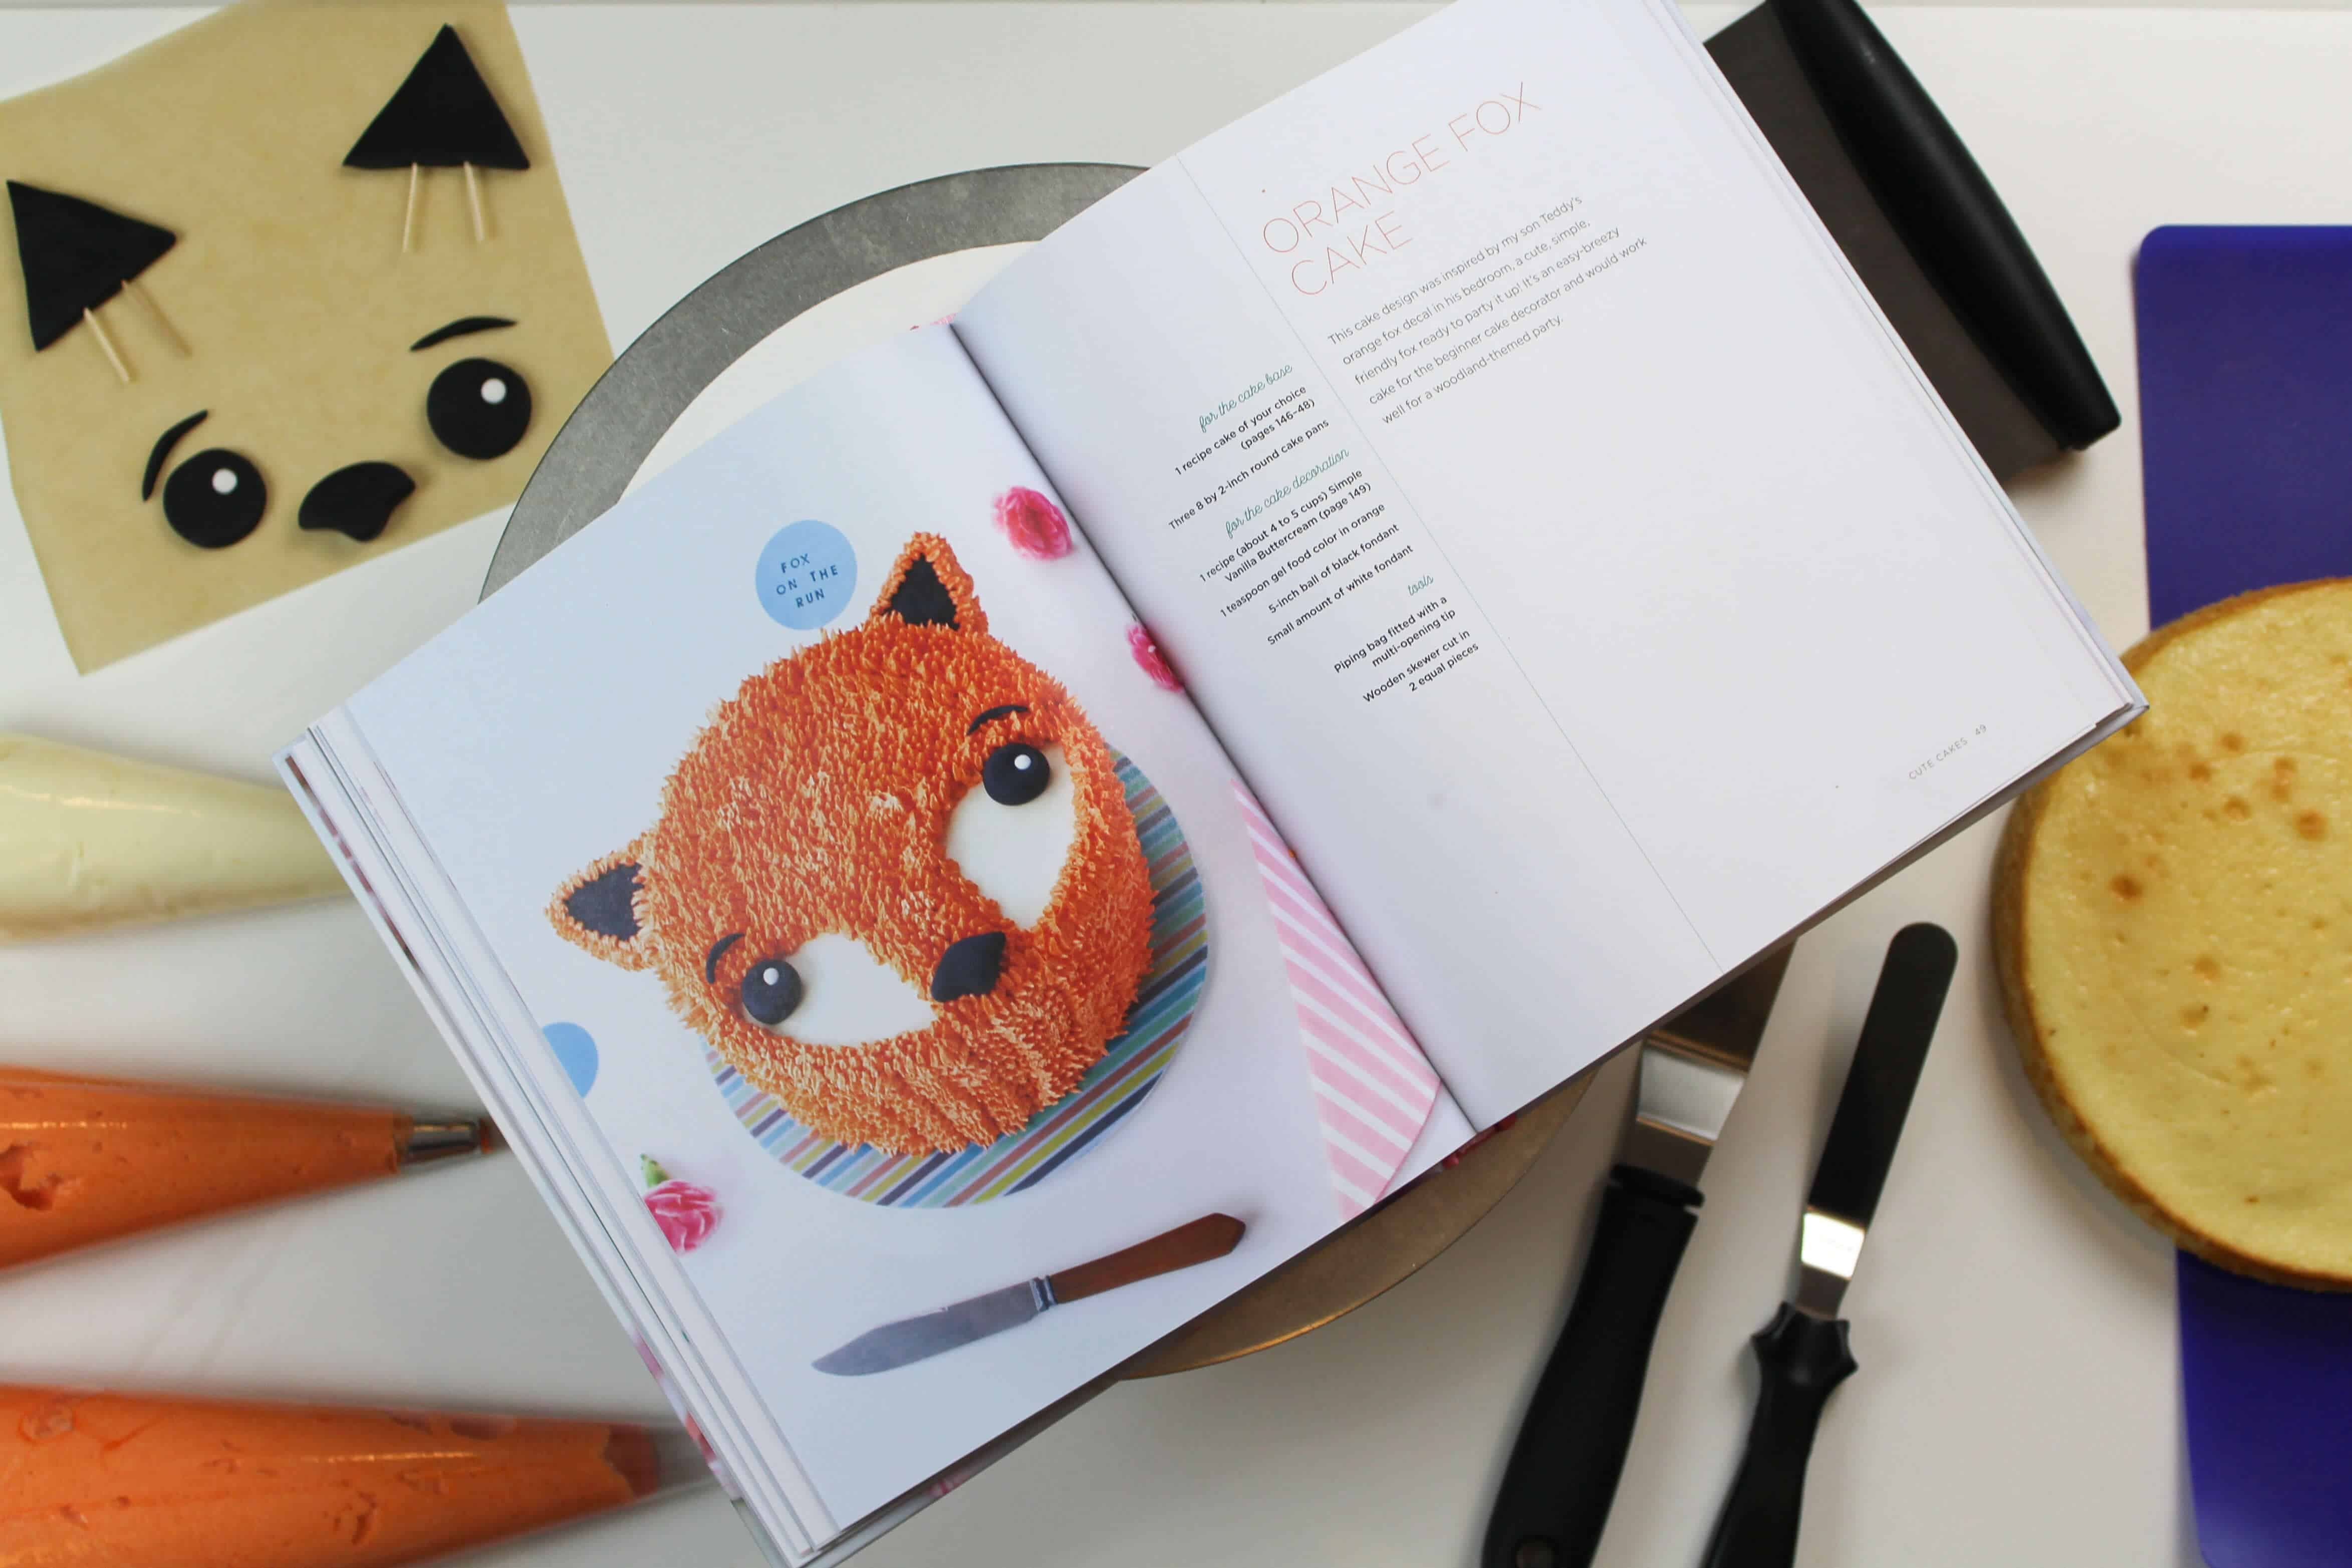 coco fox book open-2